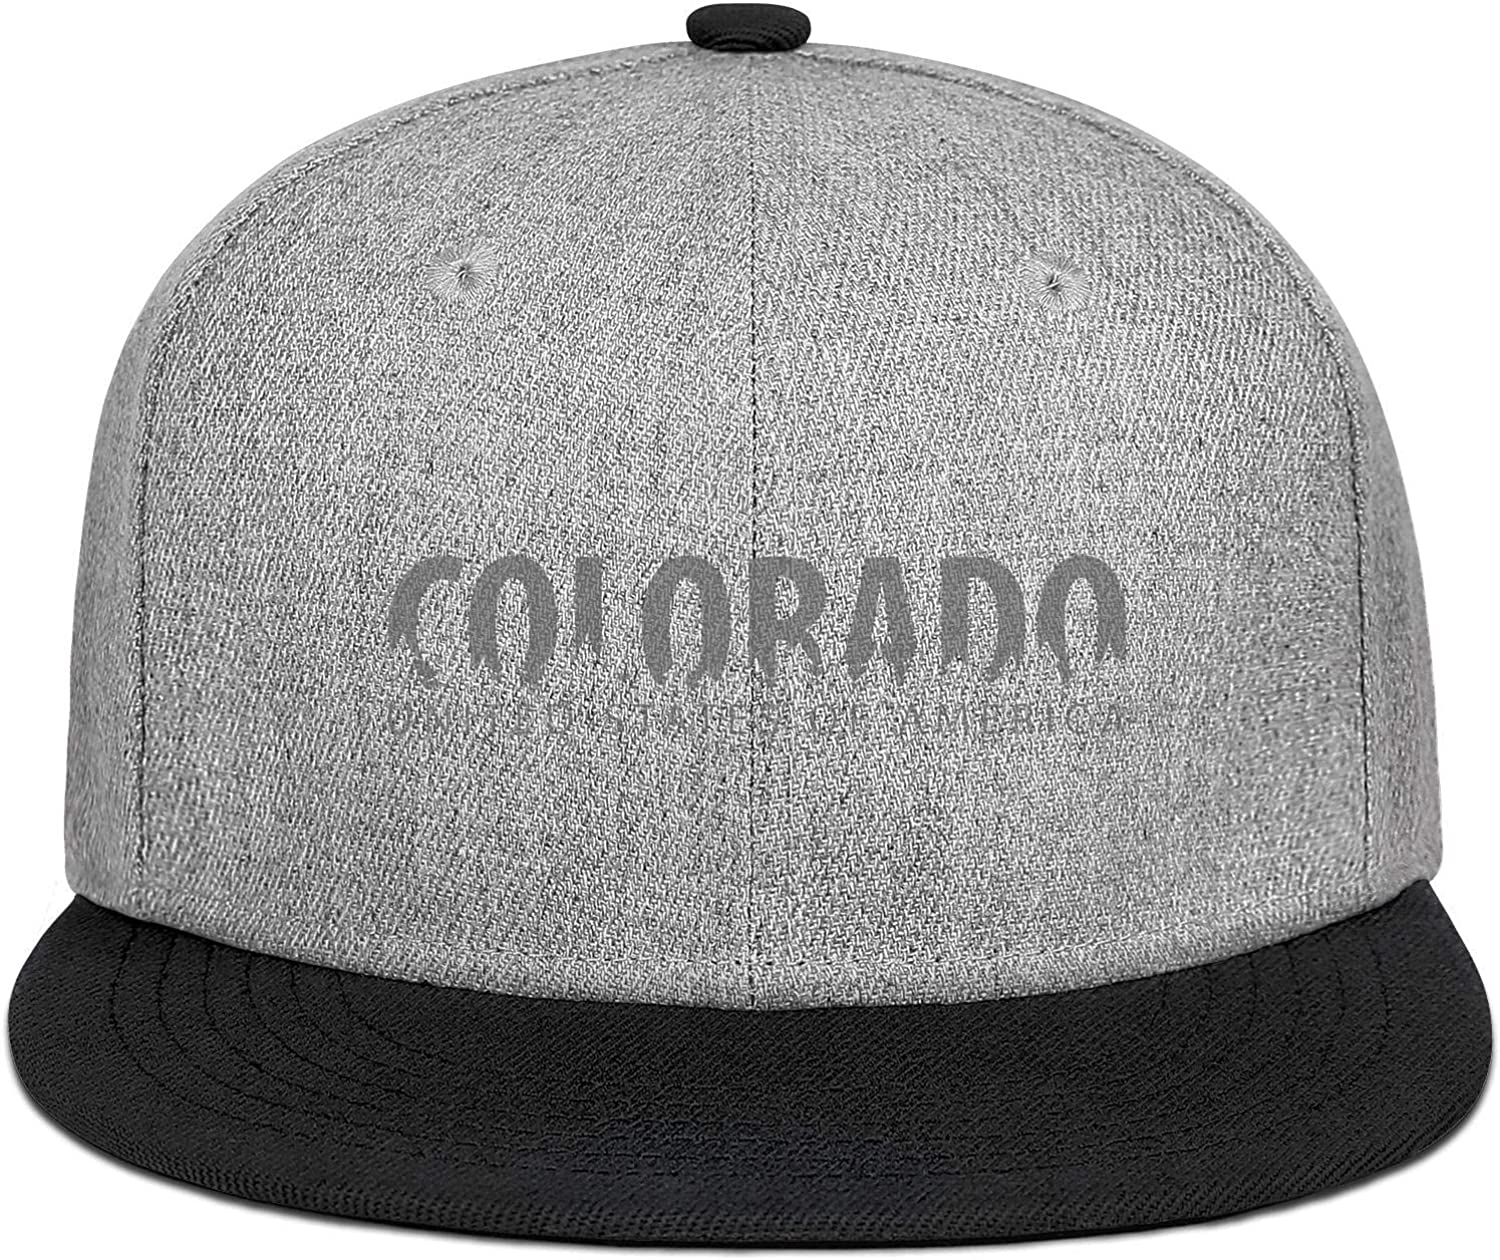 Mens Womens Trucker Hats Colorado USA United States of America Snapback Printed Caps